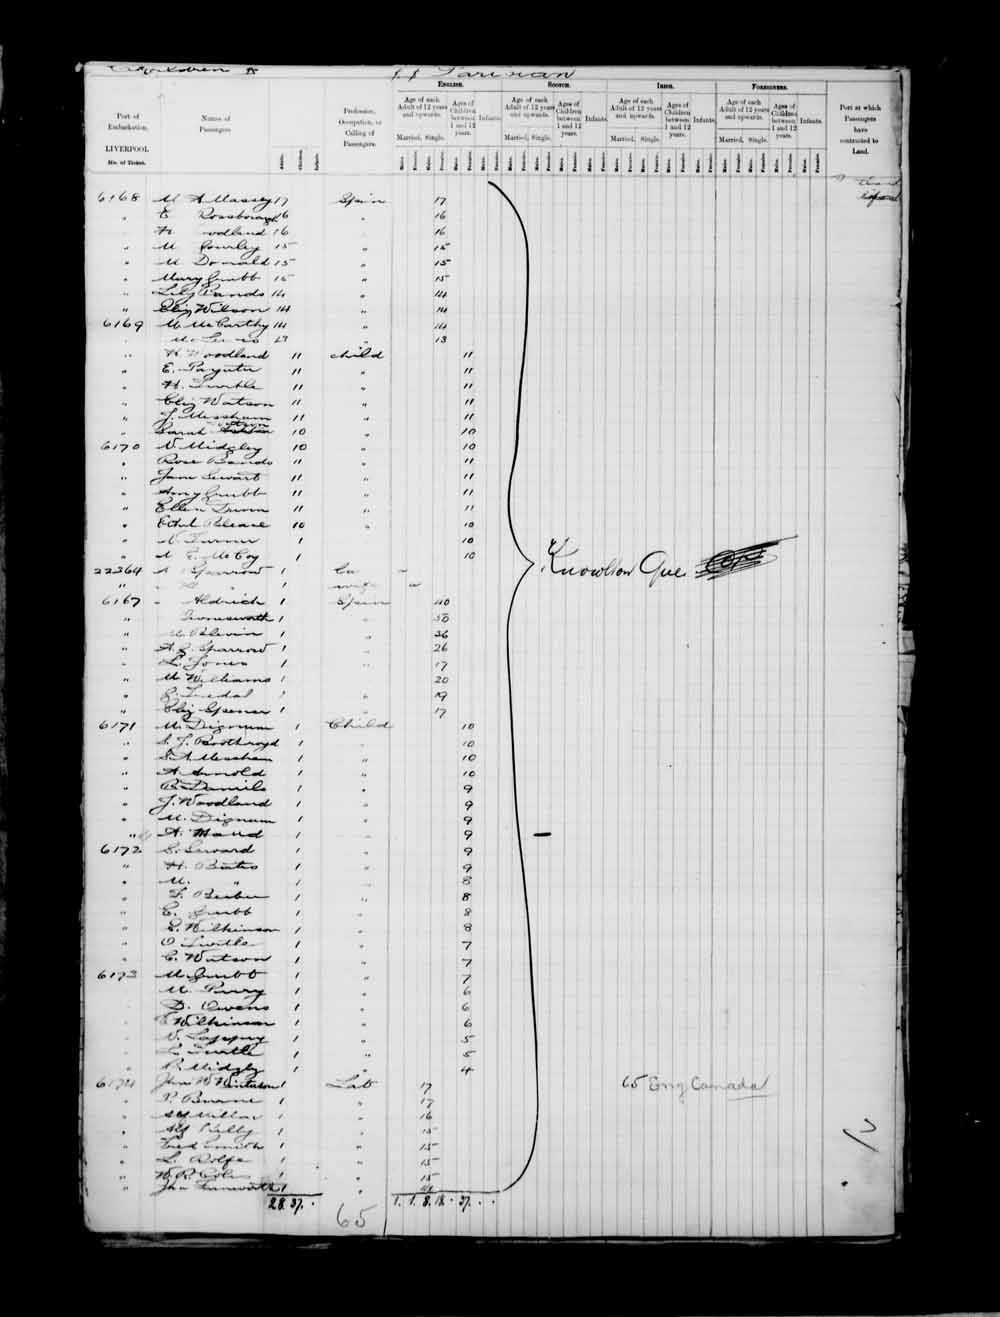 Digitized page of Passenger Lists for Image No.: e003679118